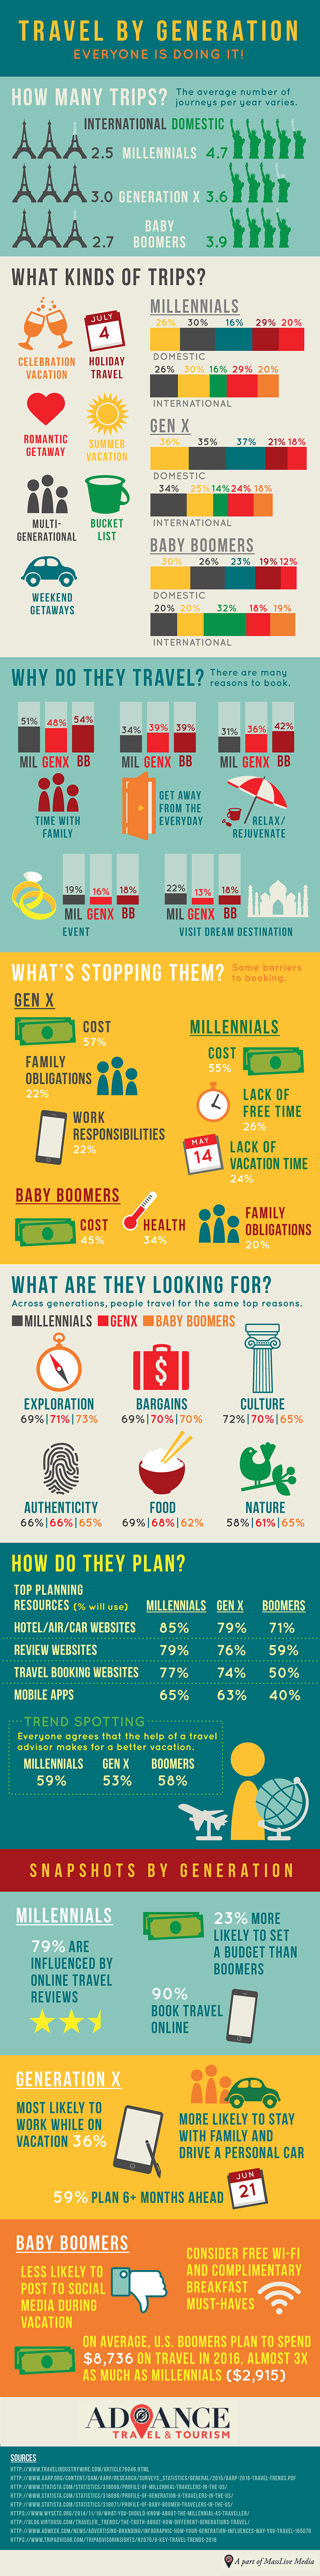 travel-by-generation-infographic4